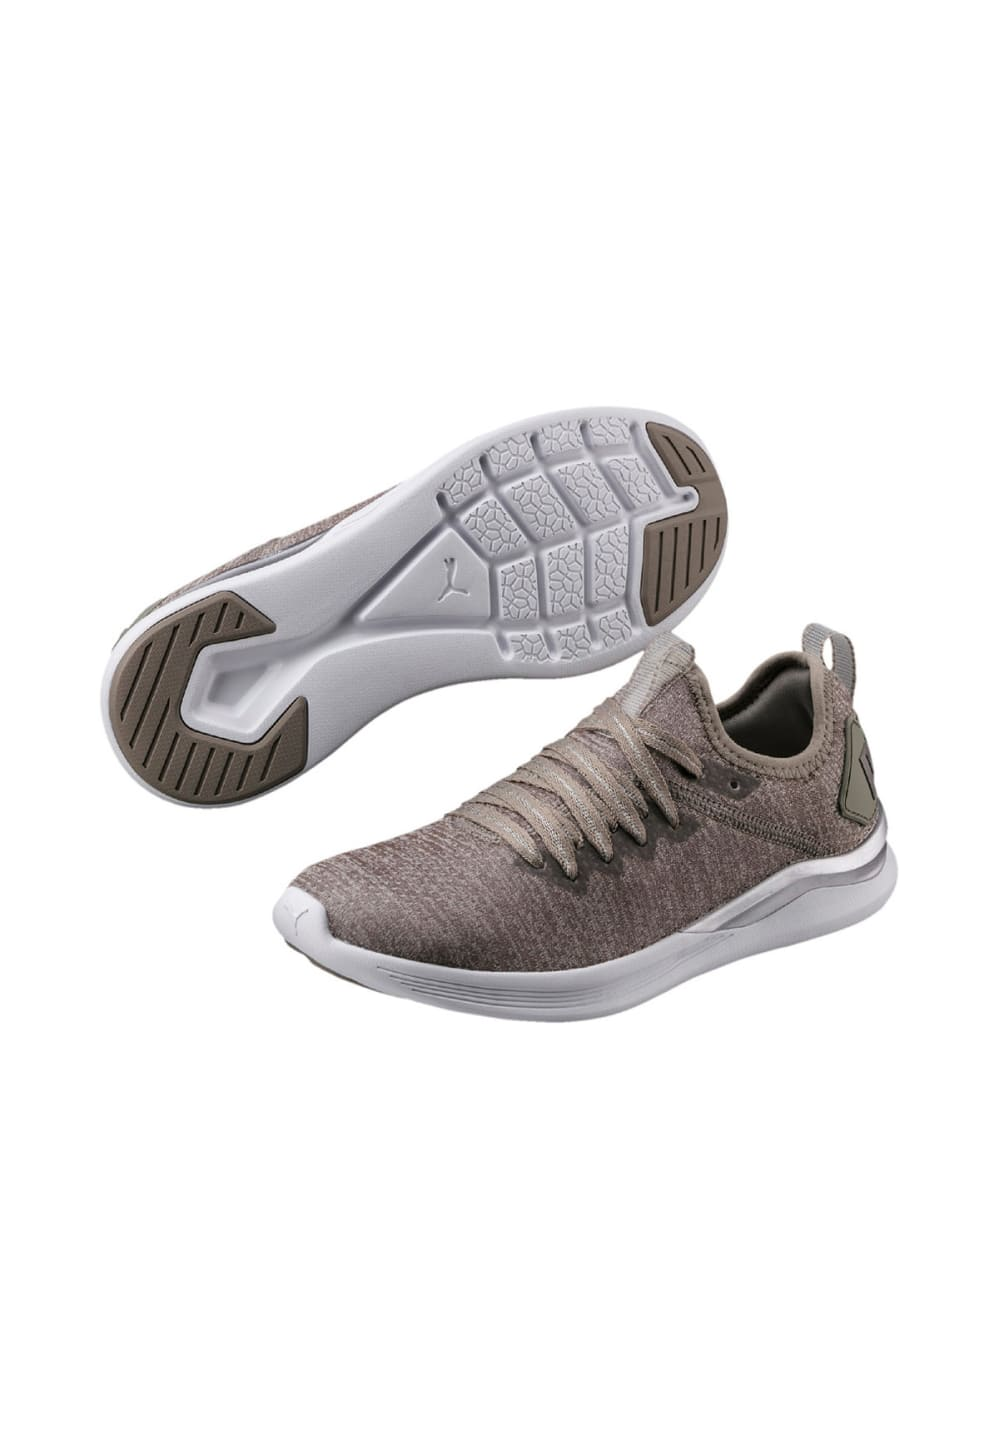 dadd10b34 Next. Puma. IGNITE Flash evoKNIT EP - Zapatillas de running para Mujer